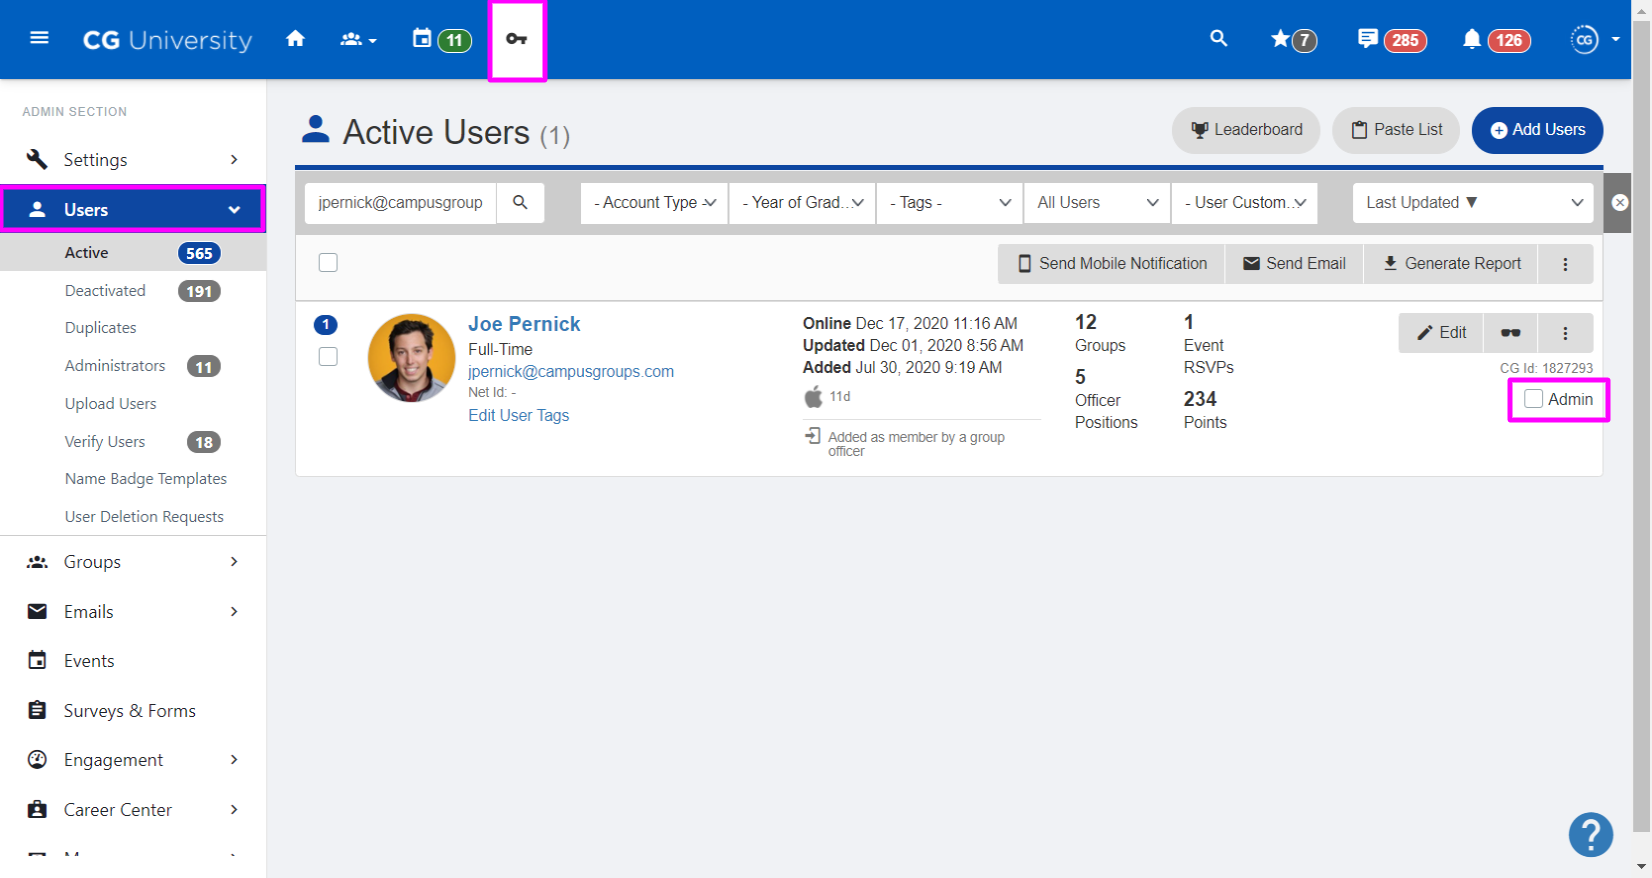 A screenshot highlighting the Admin checkbox on the Users page